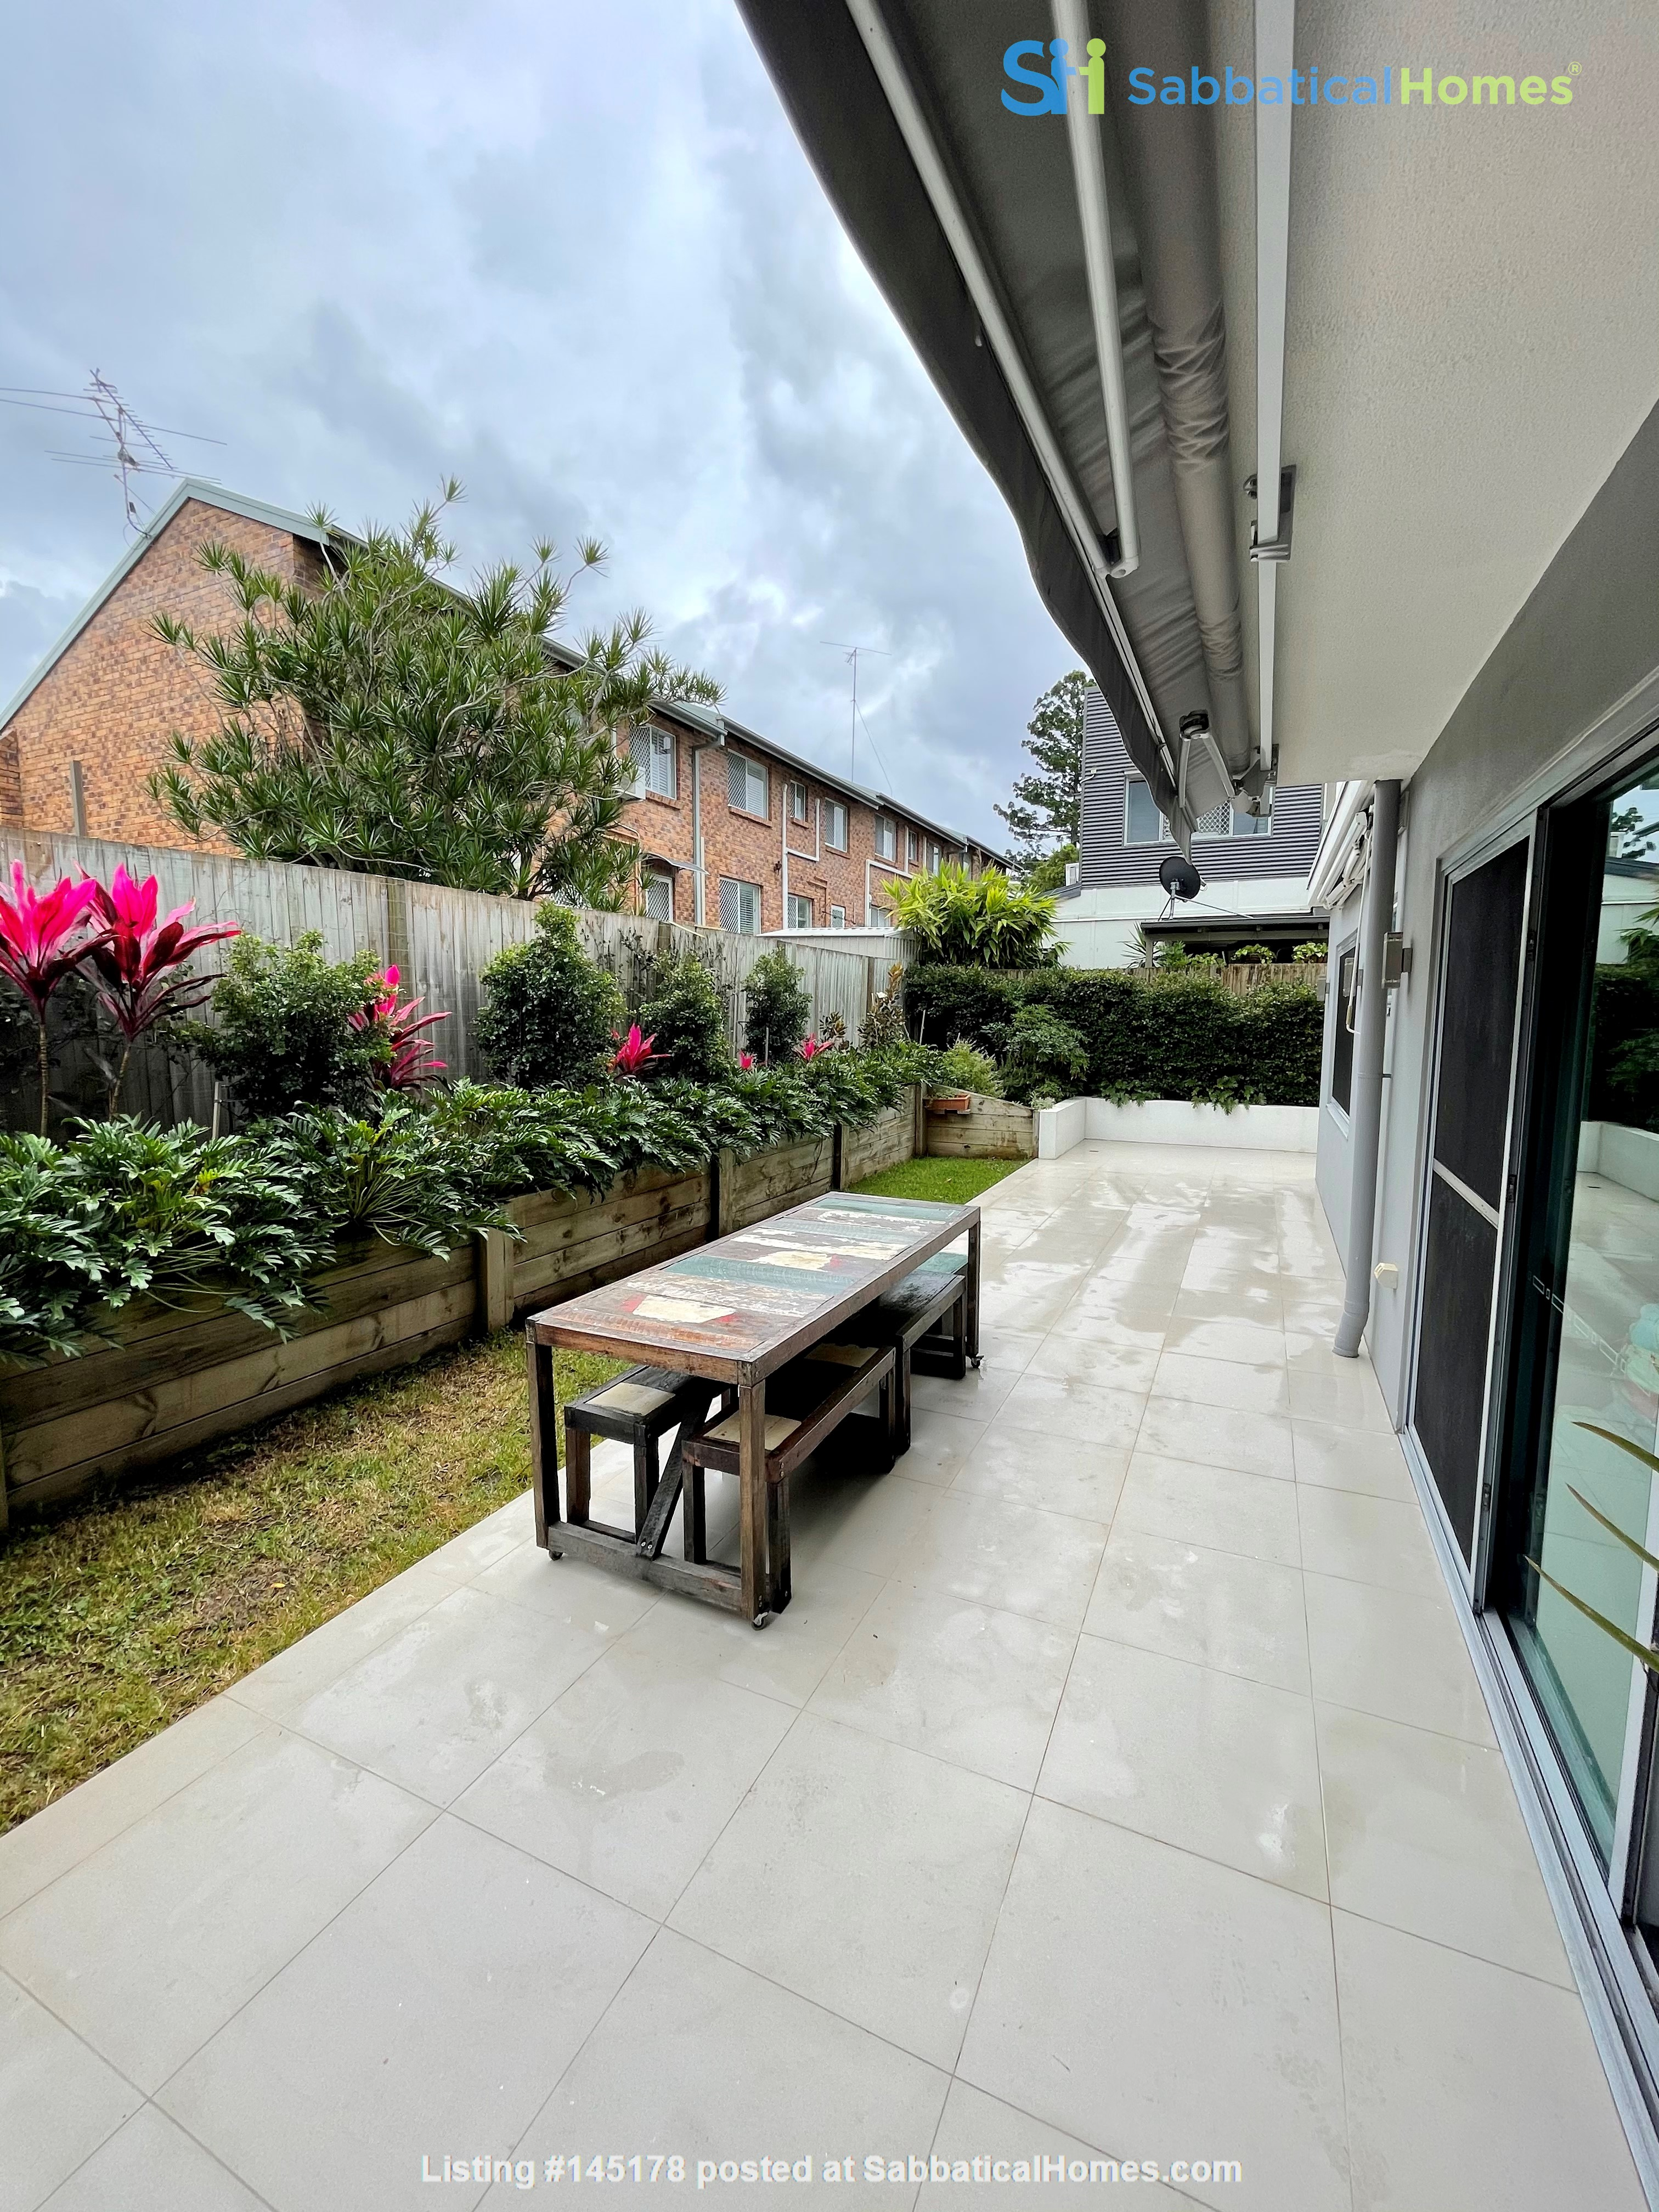 Lovely 2br apartment with large terrace/garden. 5km from Brisbane CBD Home Rental in Coorparoo, Queensland, Australia 0